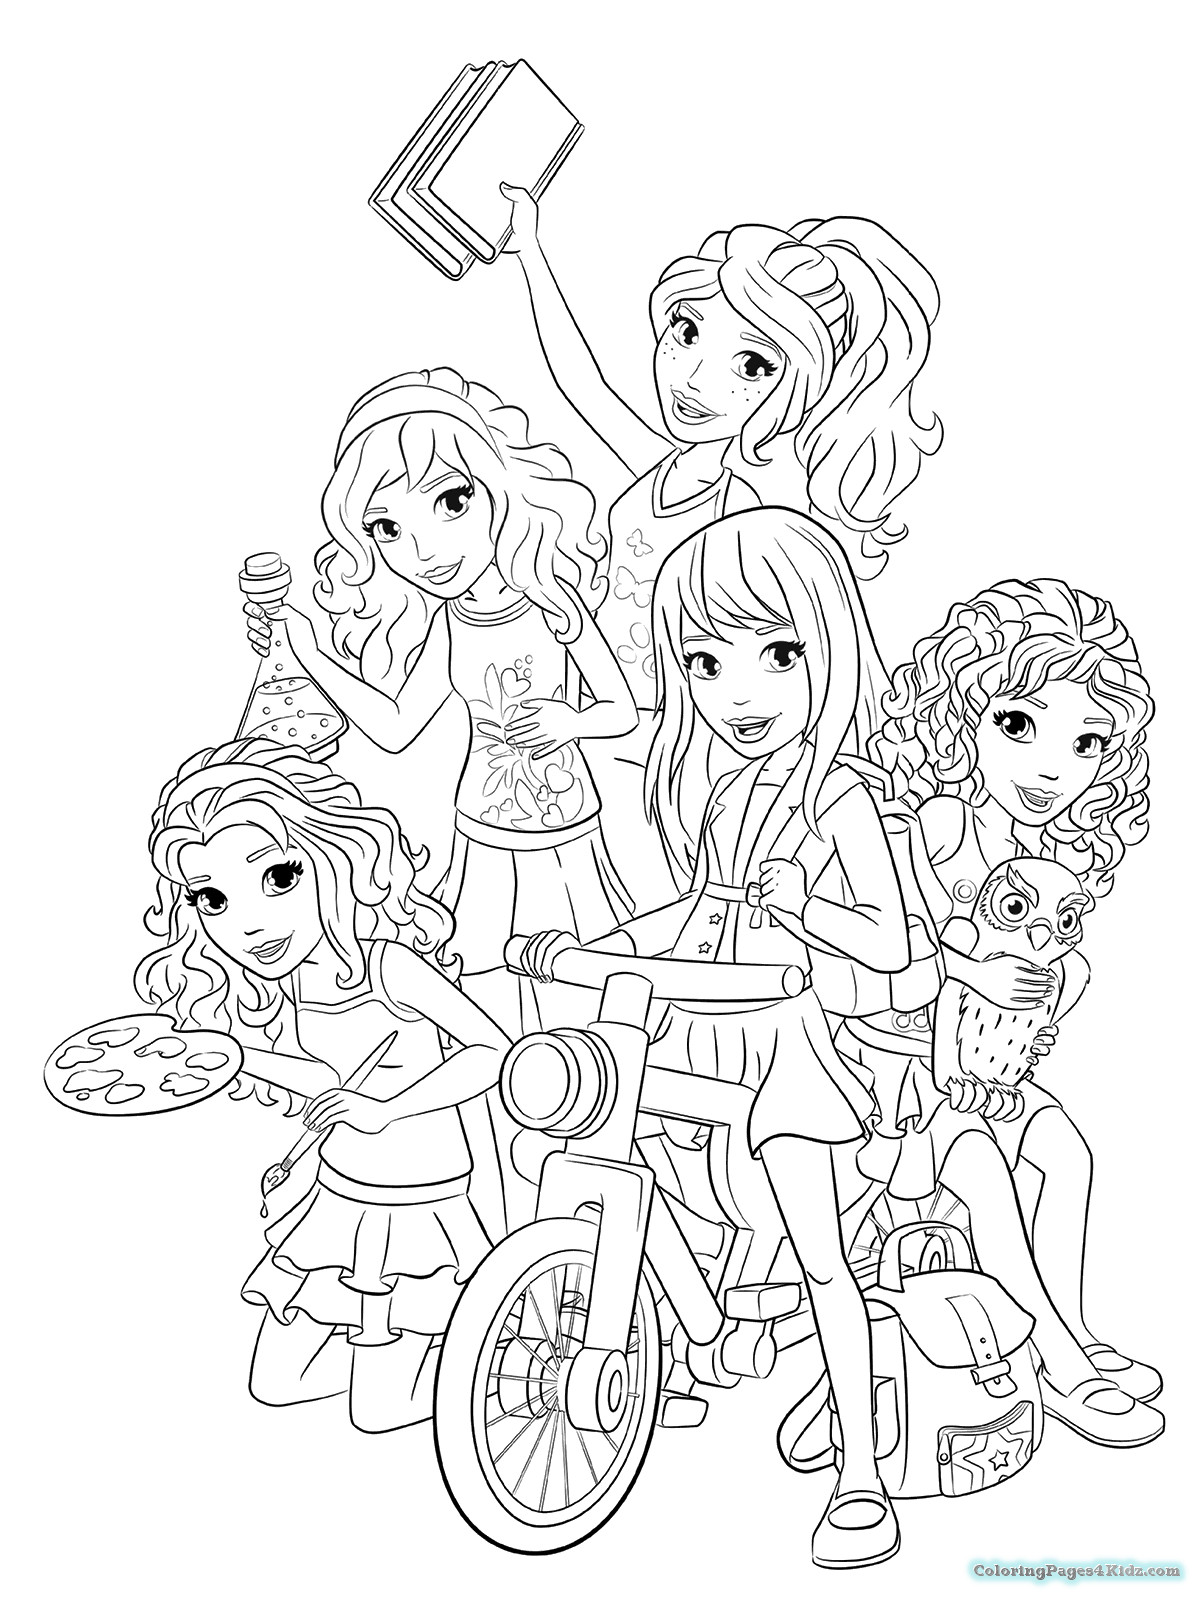 Printable Lego Coloring Sheets For Girls  Lego Friends Coloring Pages And Girls And Livi